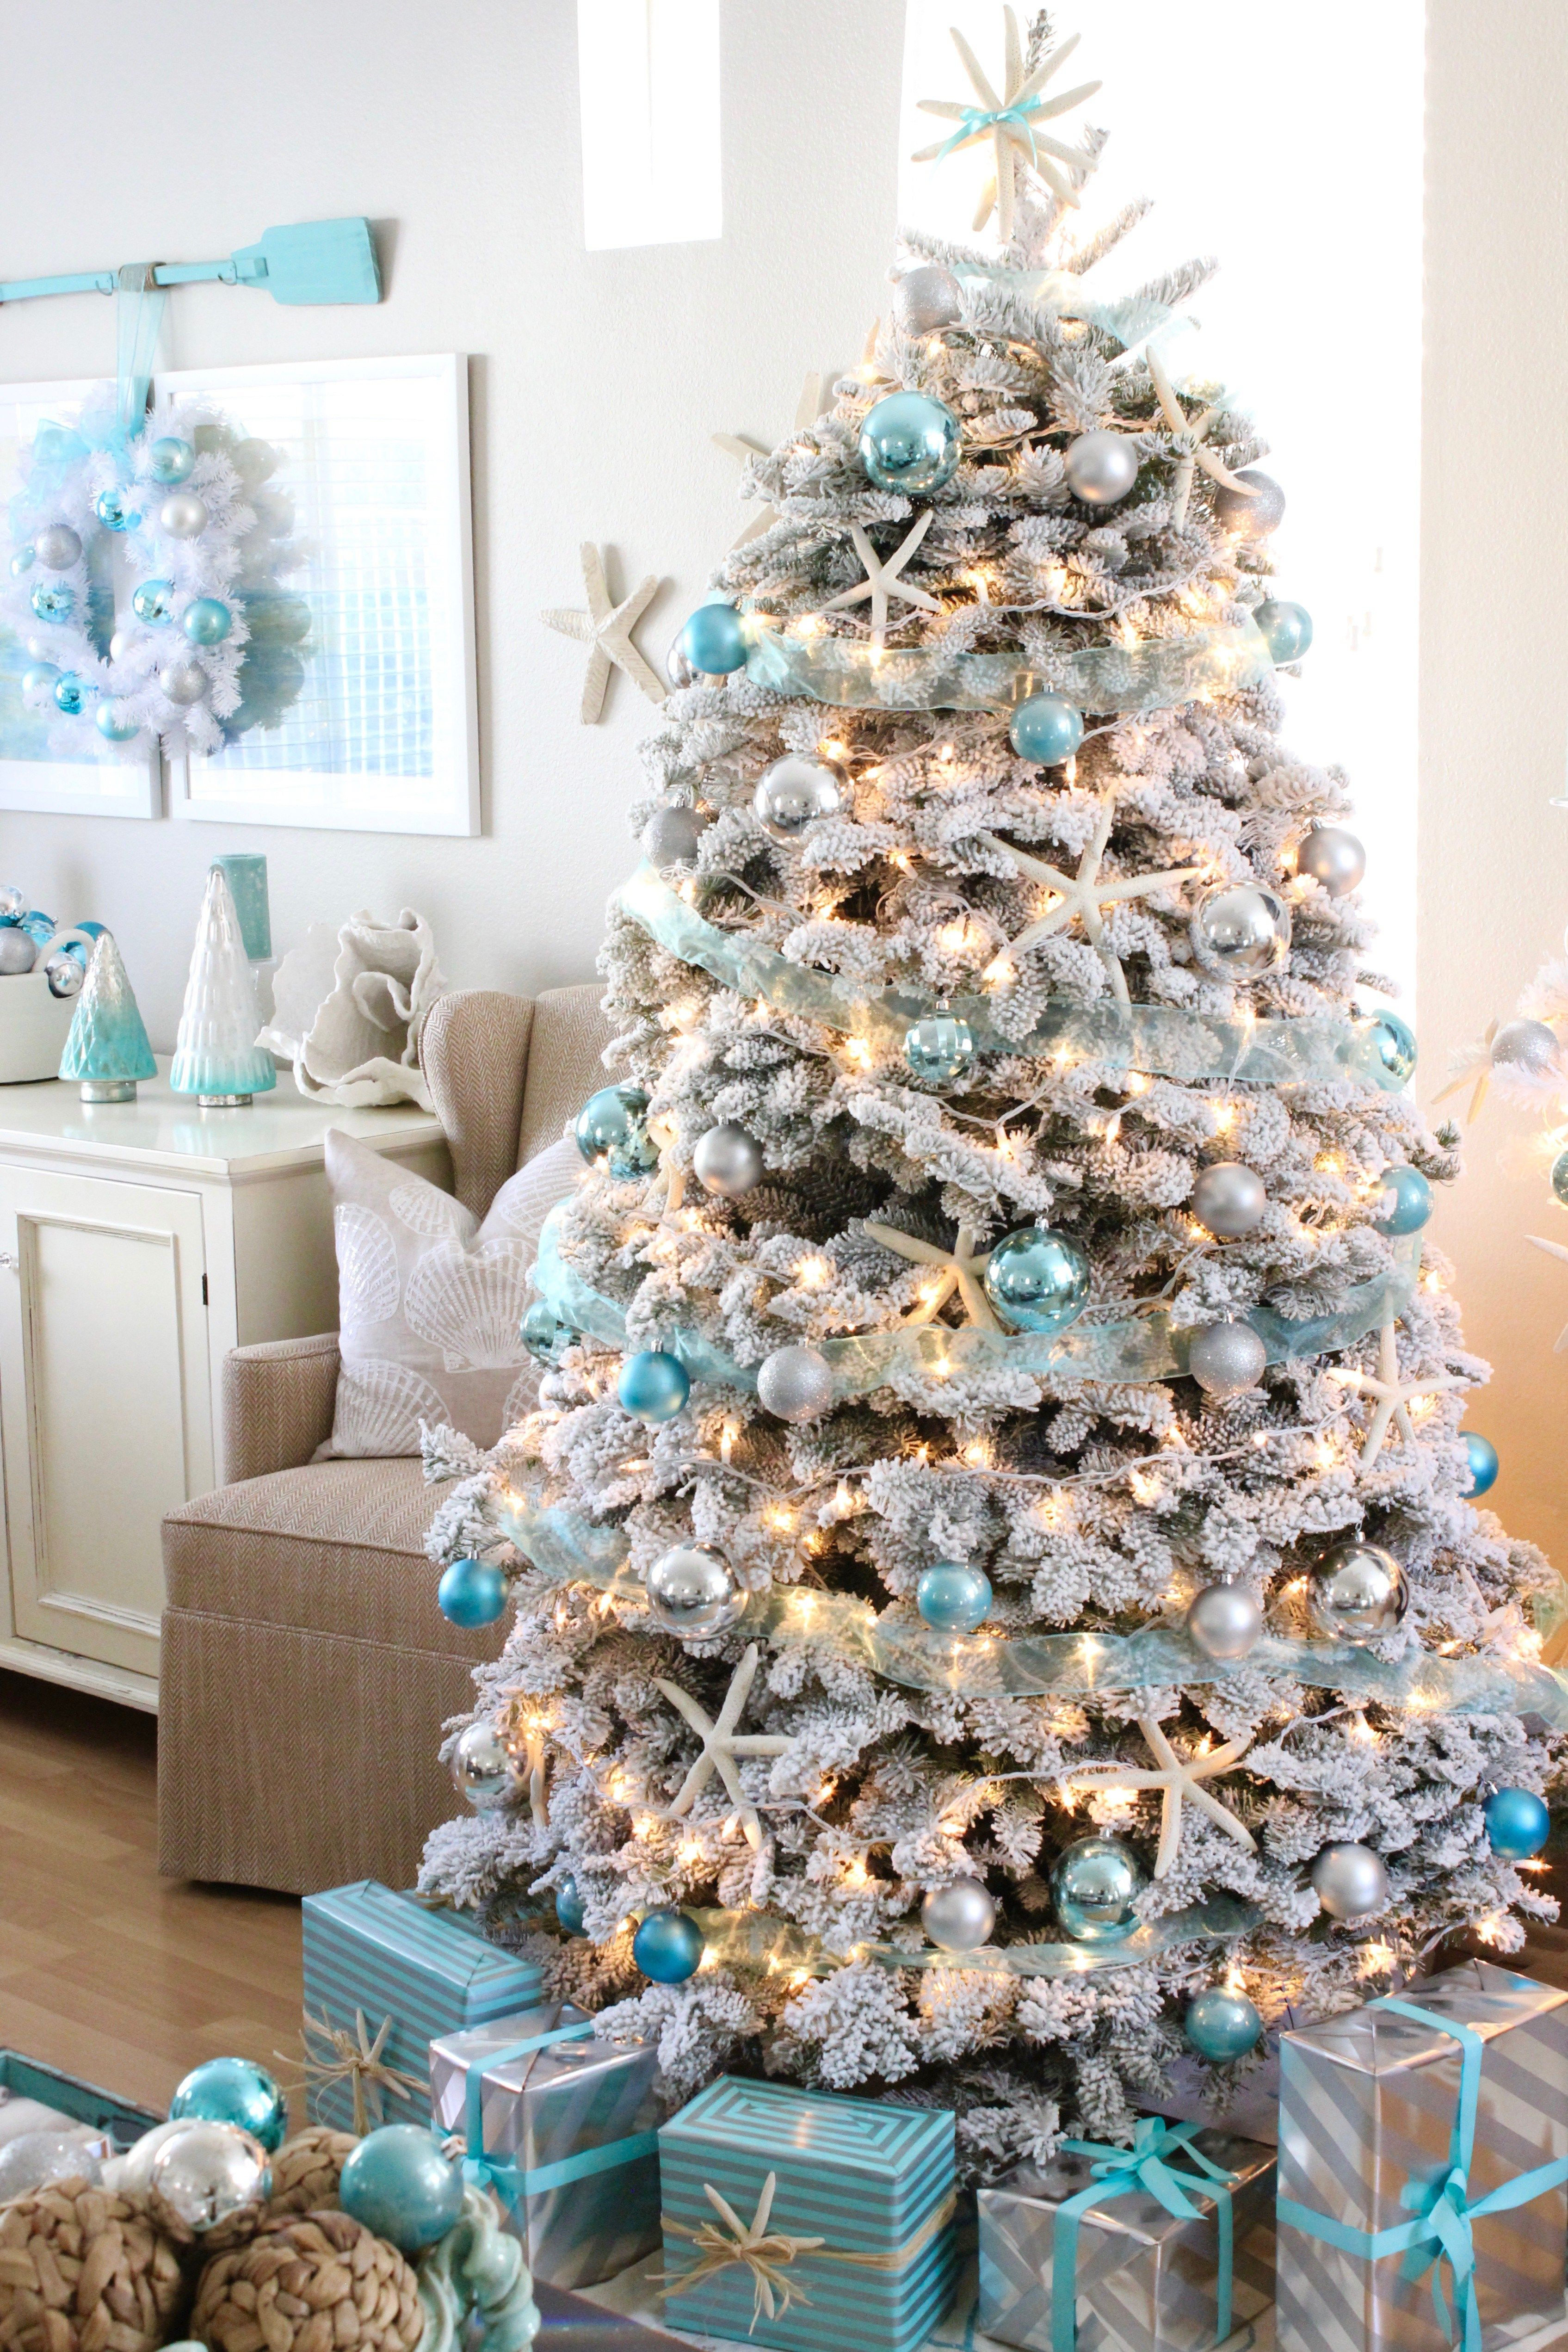 interior designocean themed christmas decorations view ocean themed christmas decorations decorating ideas contemporary beautiful and interior design